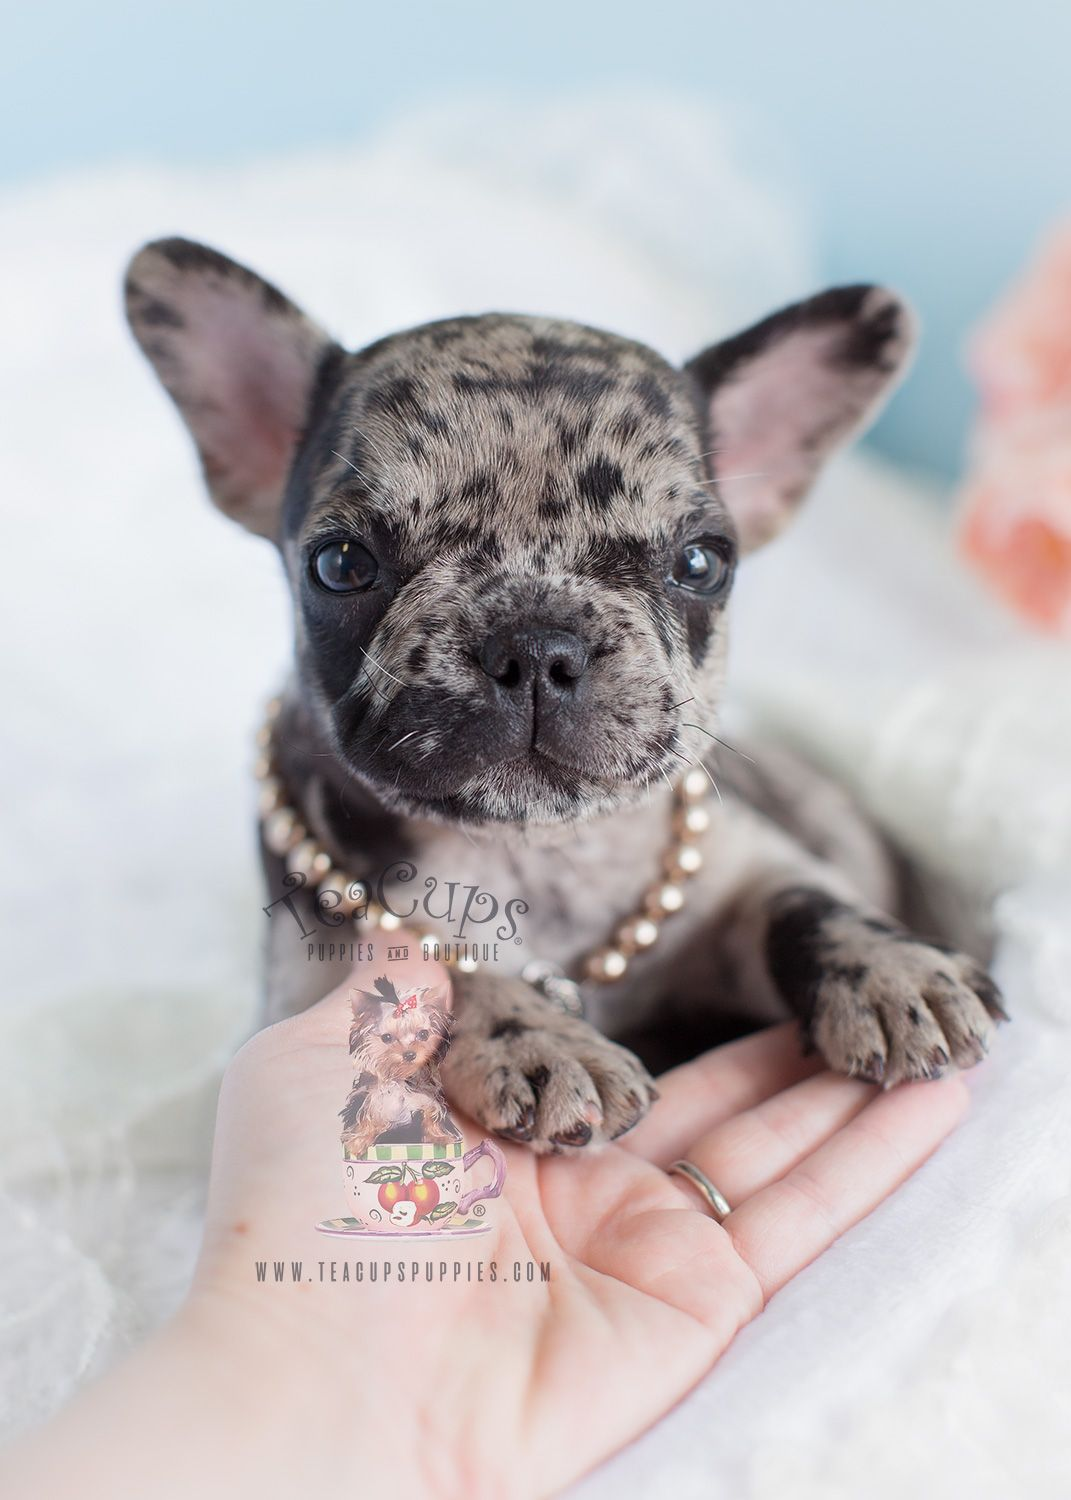 Blue Merle Bulldog For Sale : merle, bulldog, Merle, French, Bulldog, Puppy, Teacups,, Puppies, Boutique!, Www.TeaCupsPuppies.com, #frenchbulldog…, Bulldog,, Puppies,